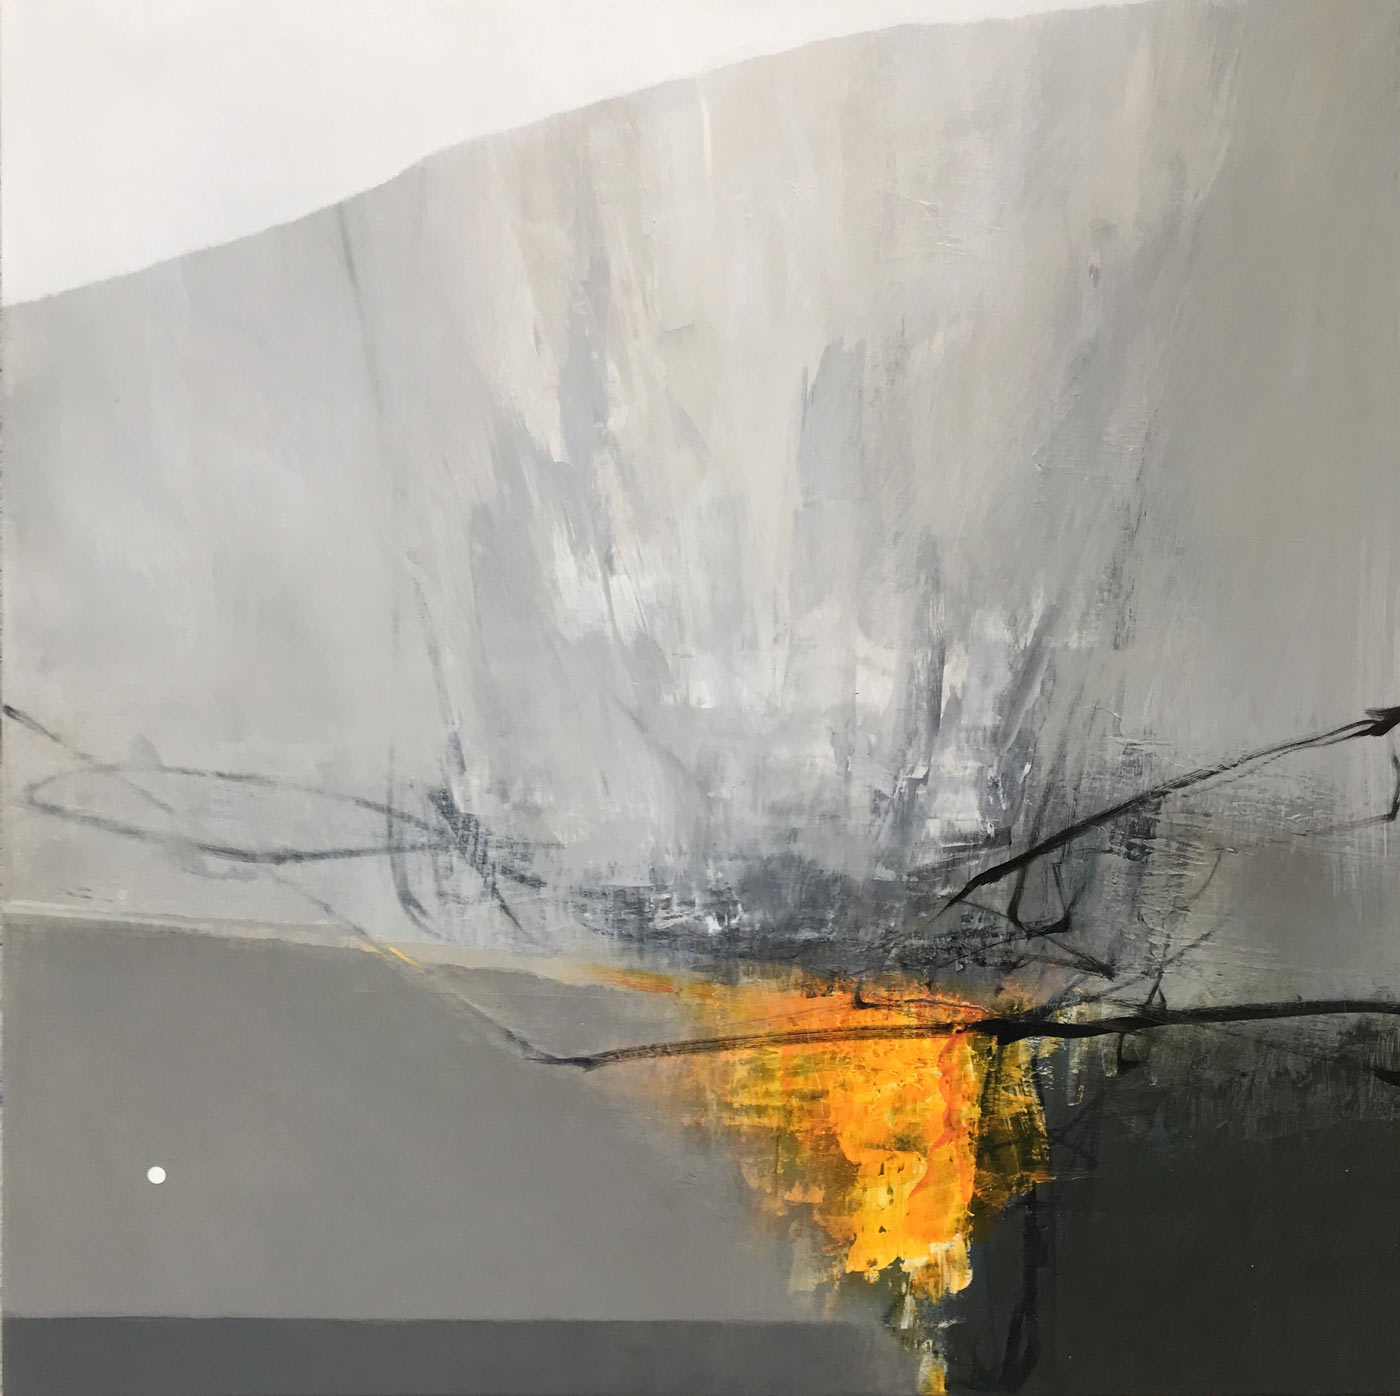 https://neilcanning.com/wp-content/uploads/sites/3/2021/08/Cambrian-by-Neil-Canning-at-Martin-Tinney-Gallery-Cardiff.jpg